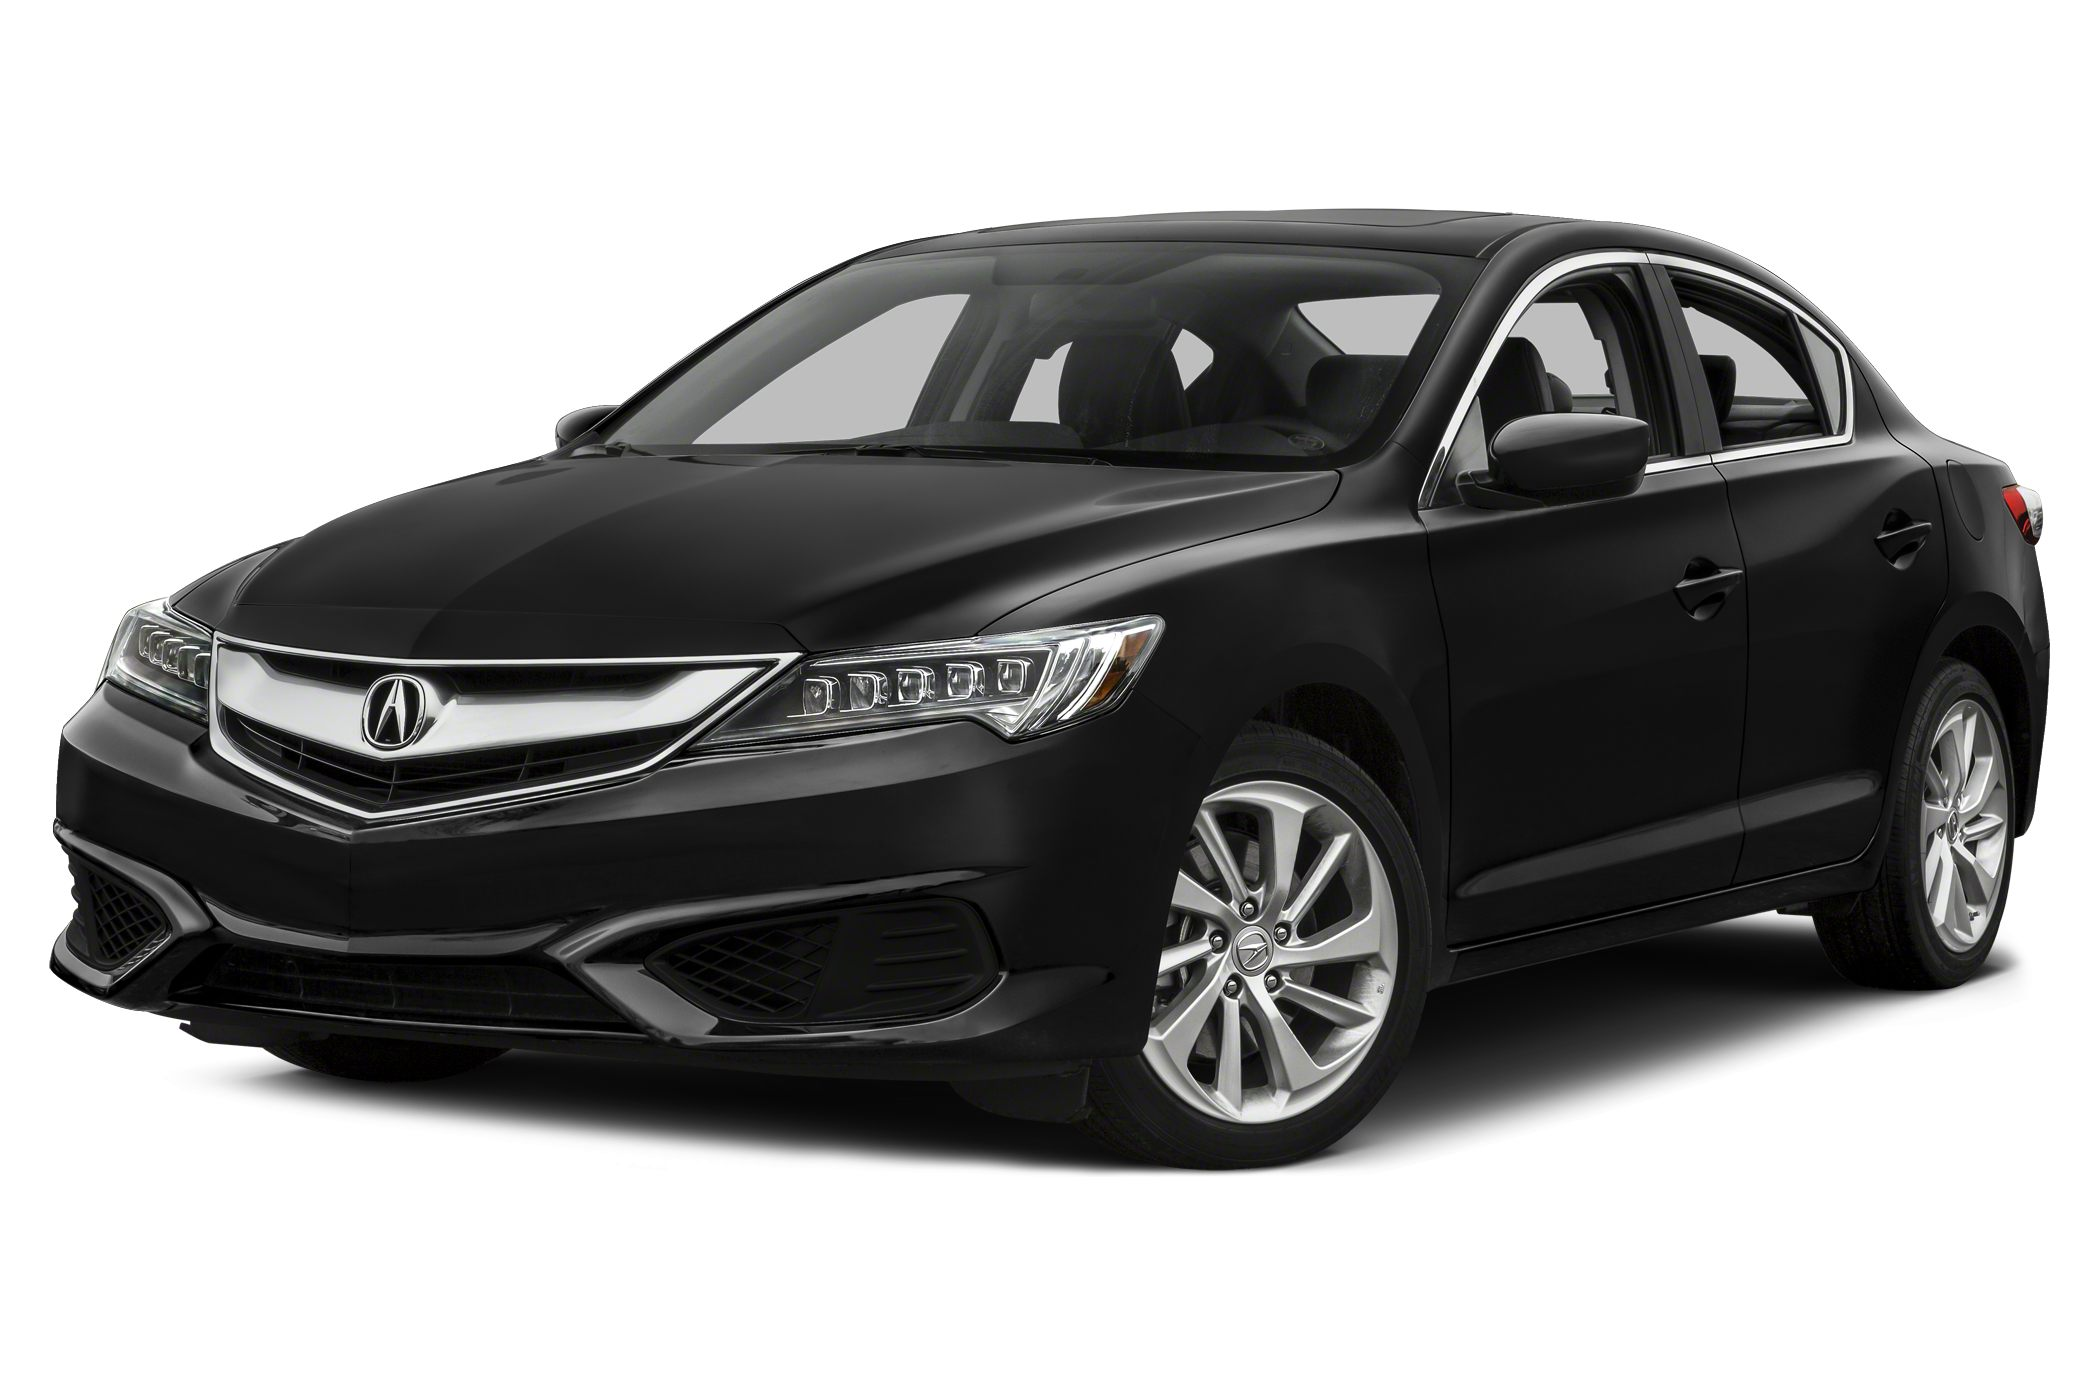 2018 acura ilx lease deals